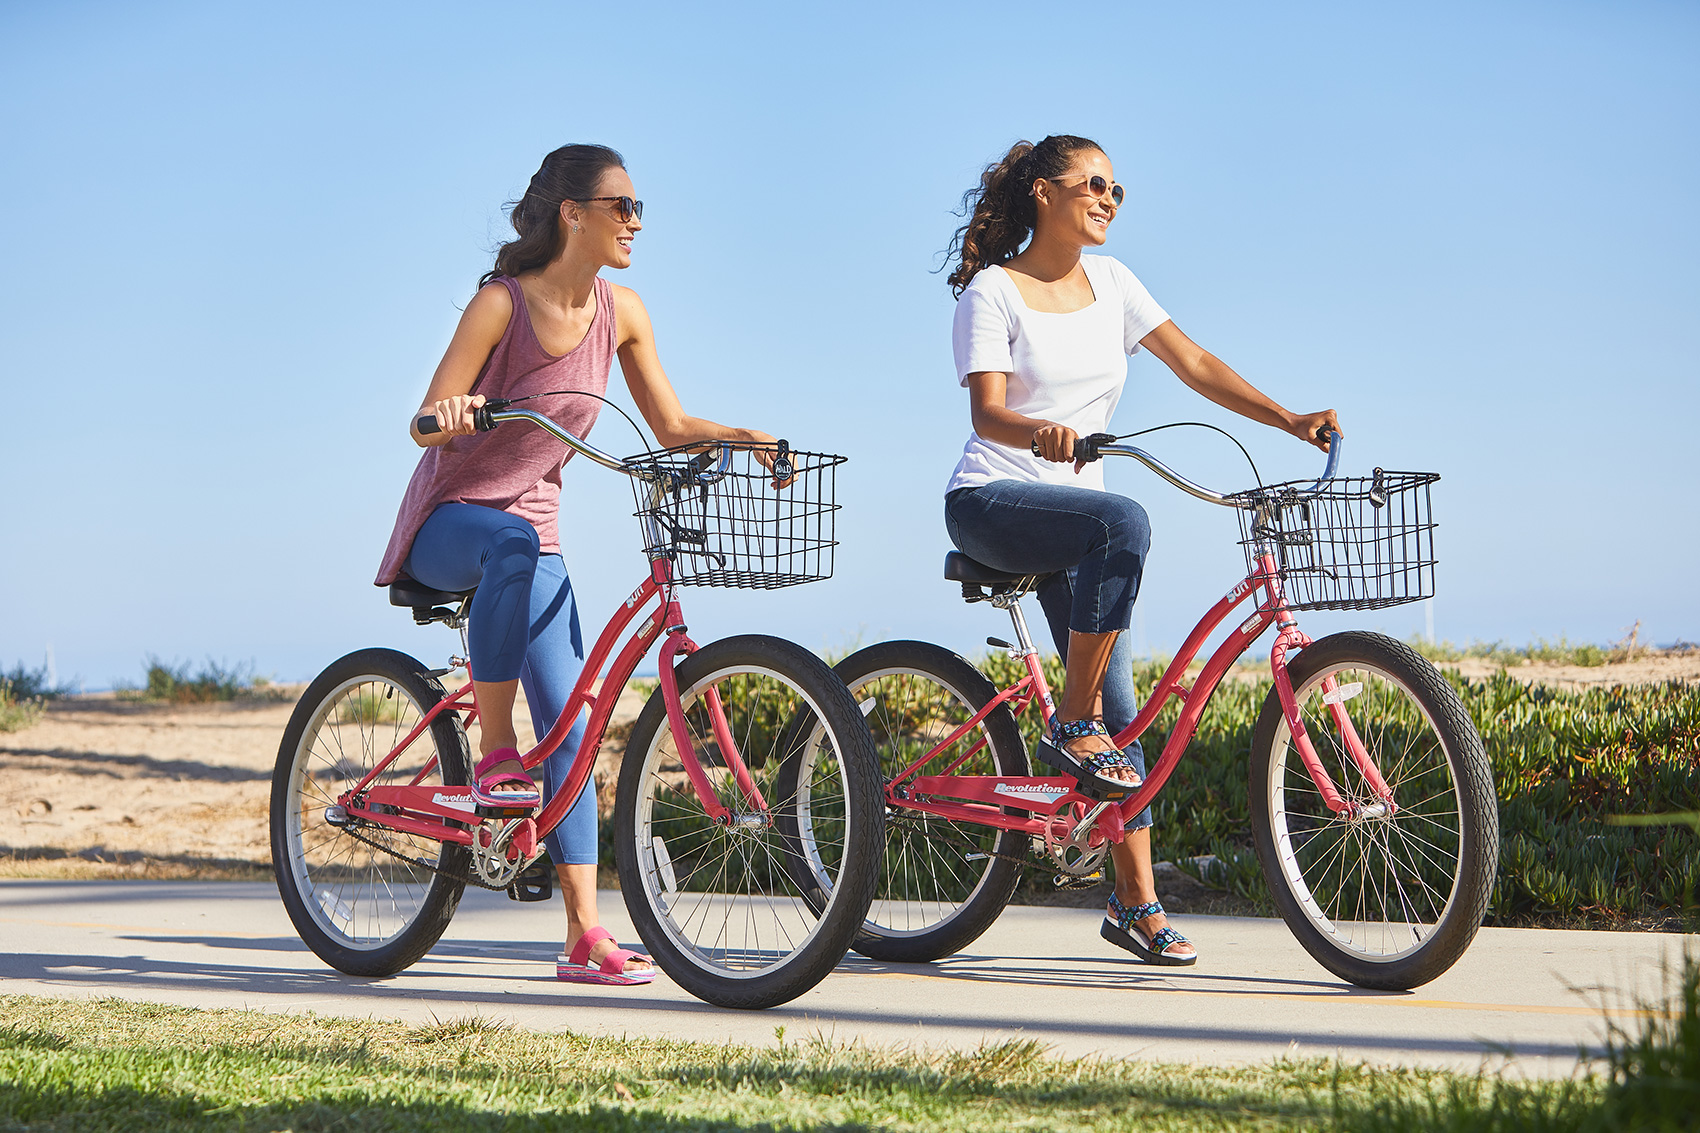 Bike Ride Lifestyle in Santa Barbara with your Best Friend